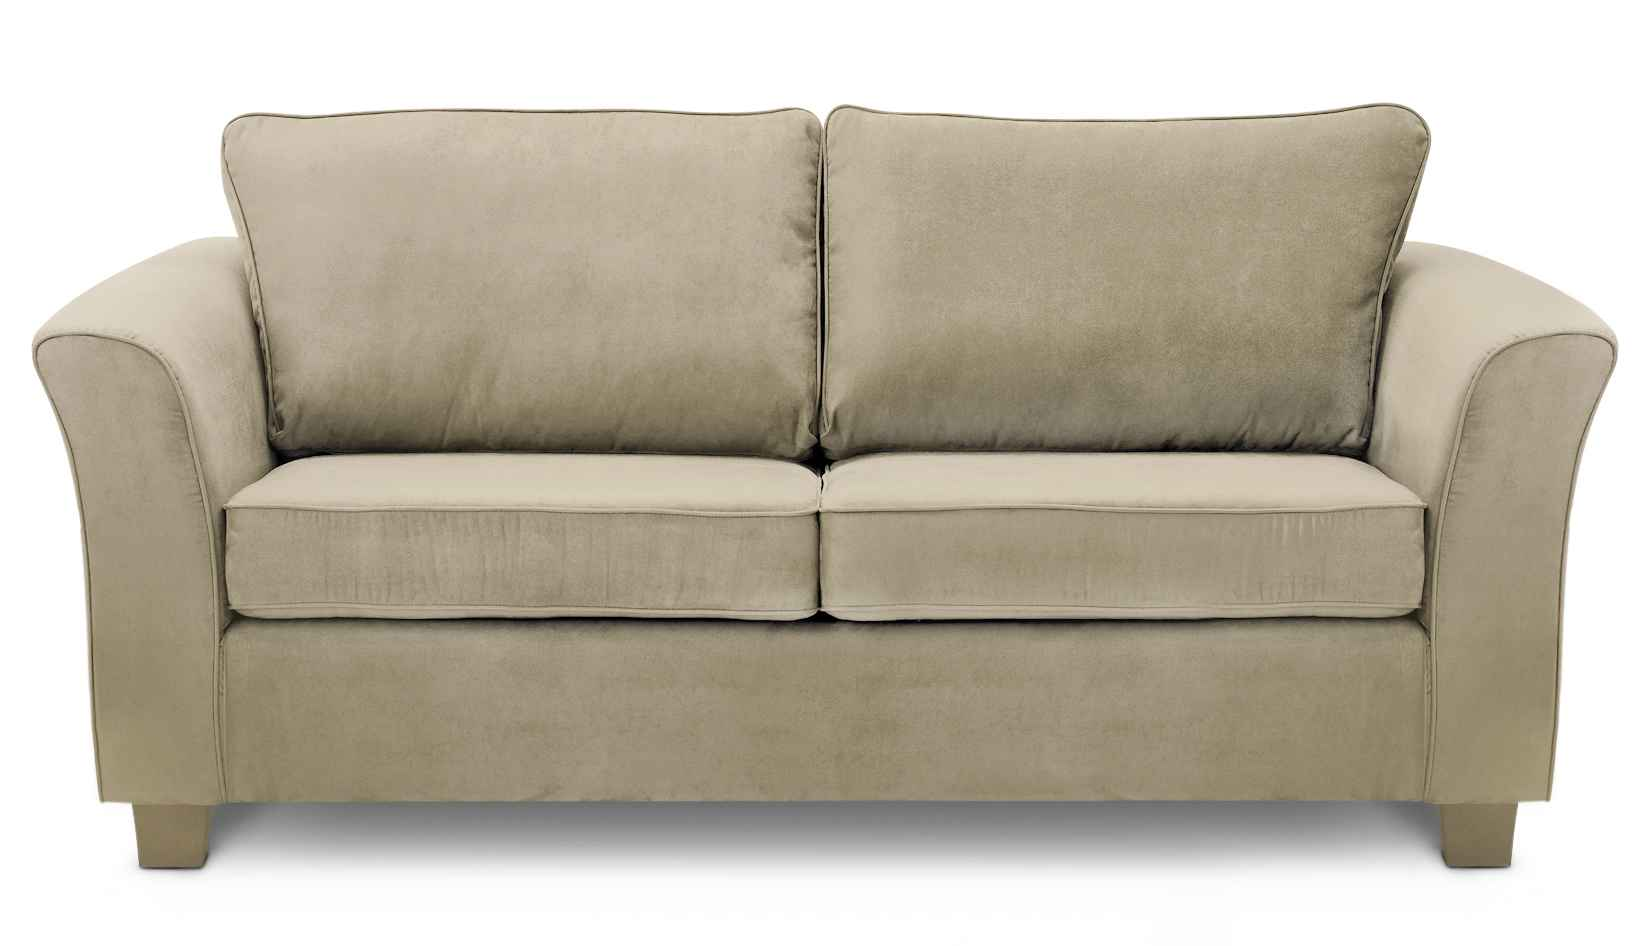 Living room furniture sets for sale cheap 2017 2018 for Fabric couches for sale